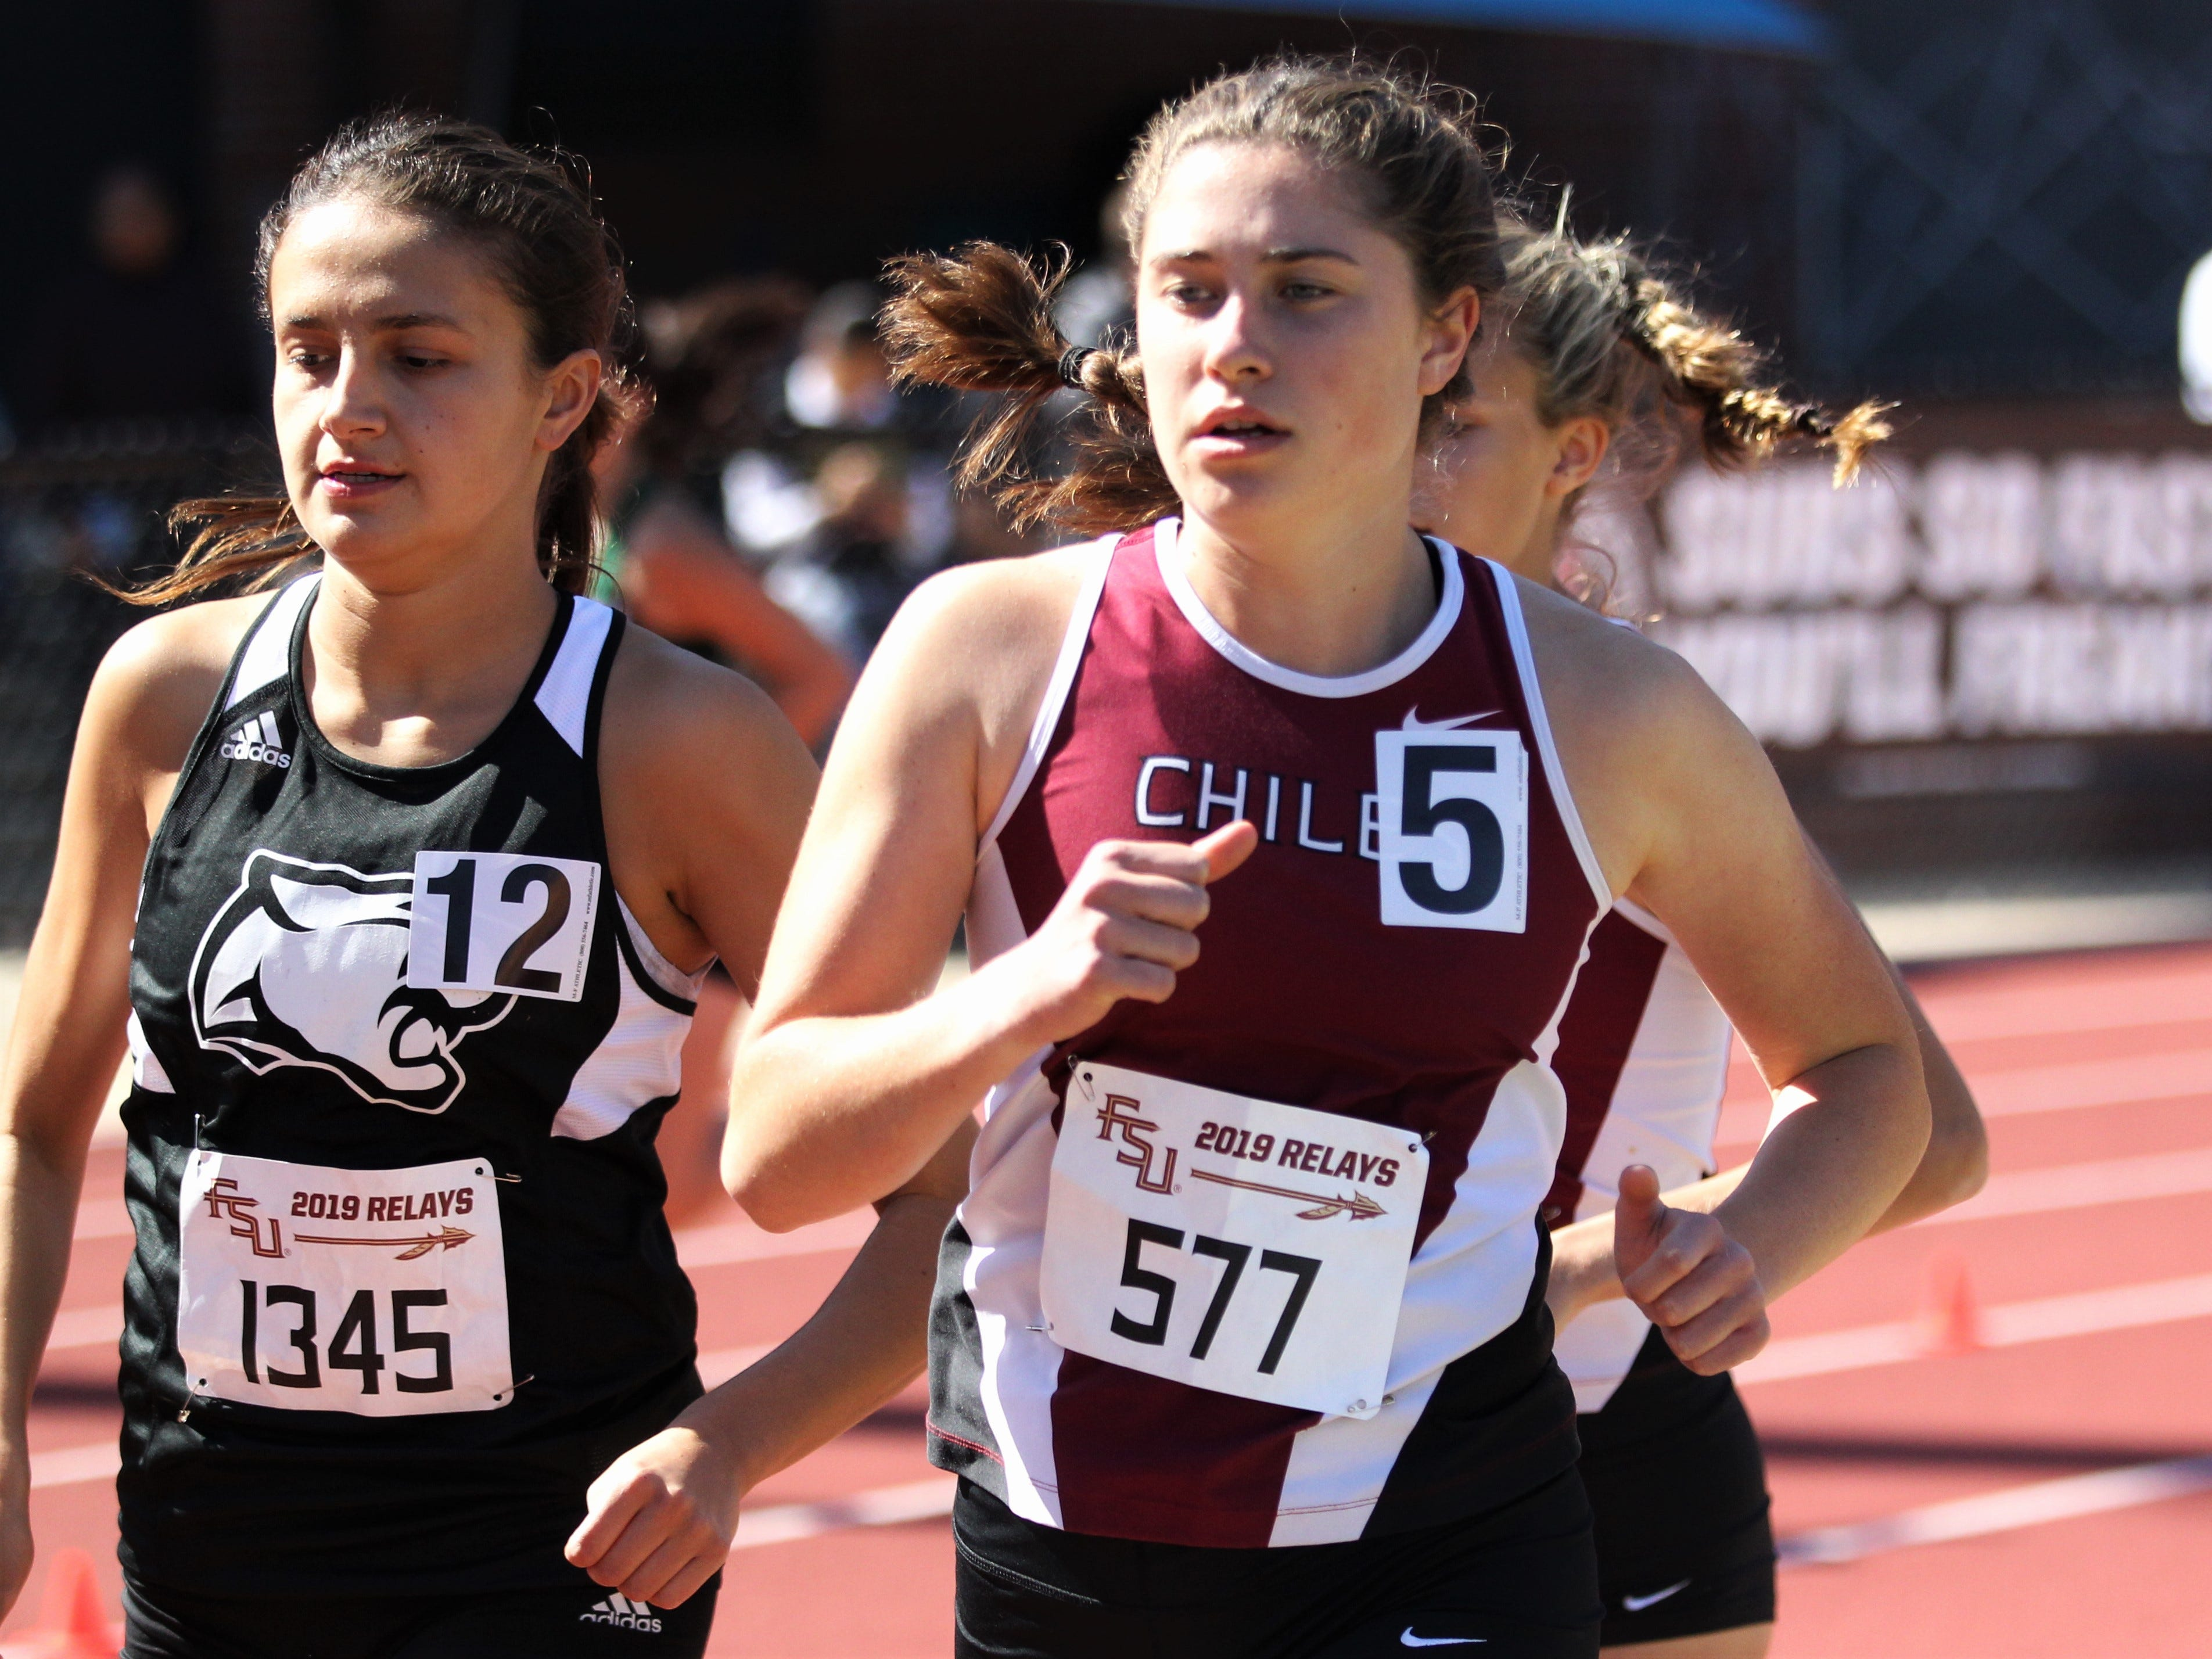 Chiles junior Megan Churchill runs the 1600 during the 40th annual FSU Relays at Mike Long Track on Saturday, March 23, 2019.